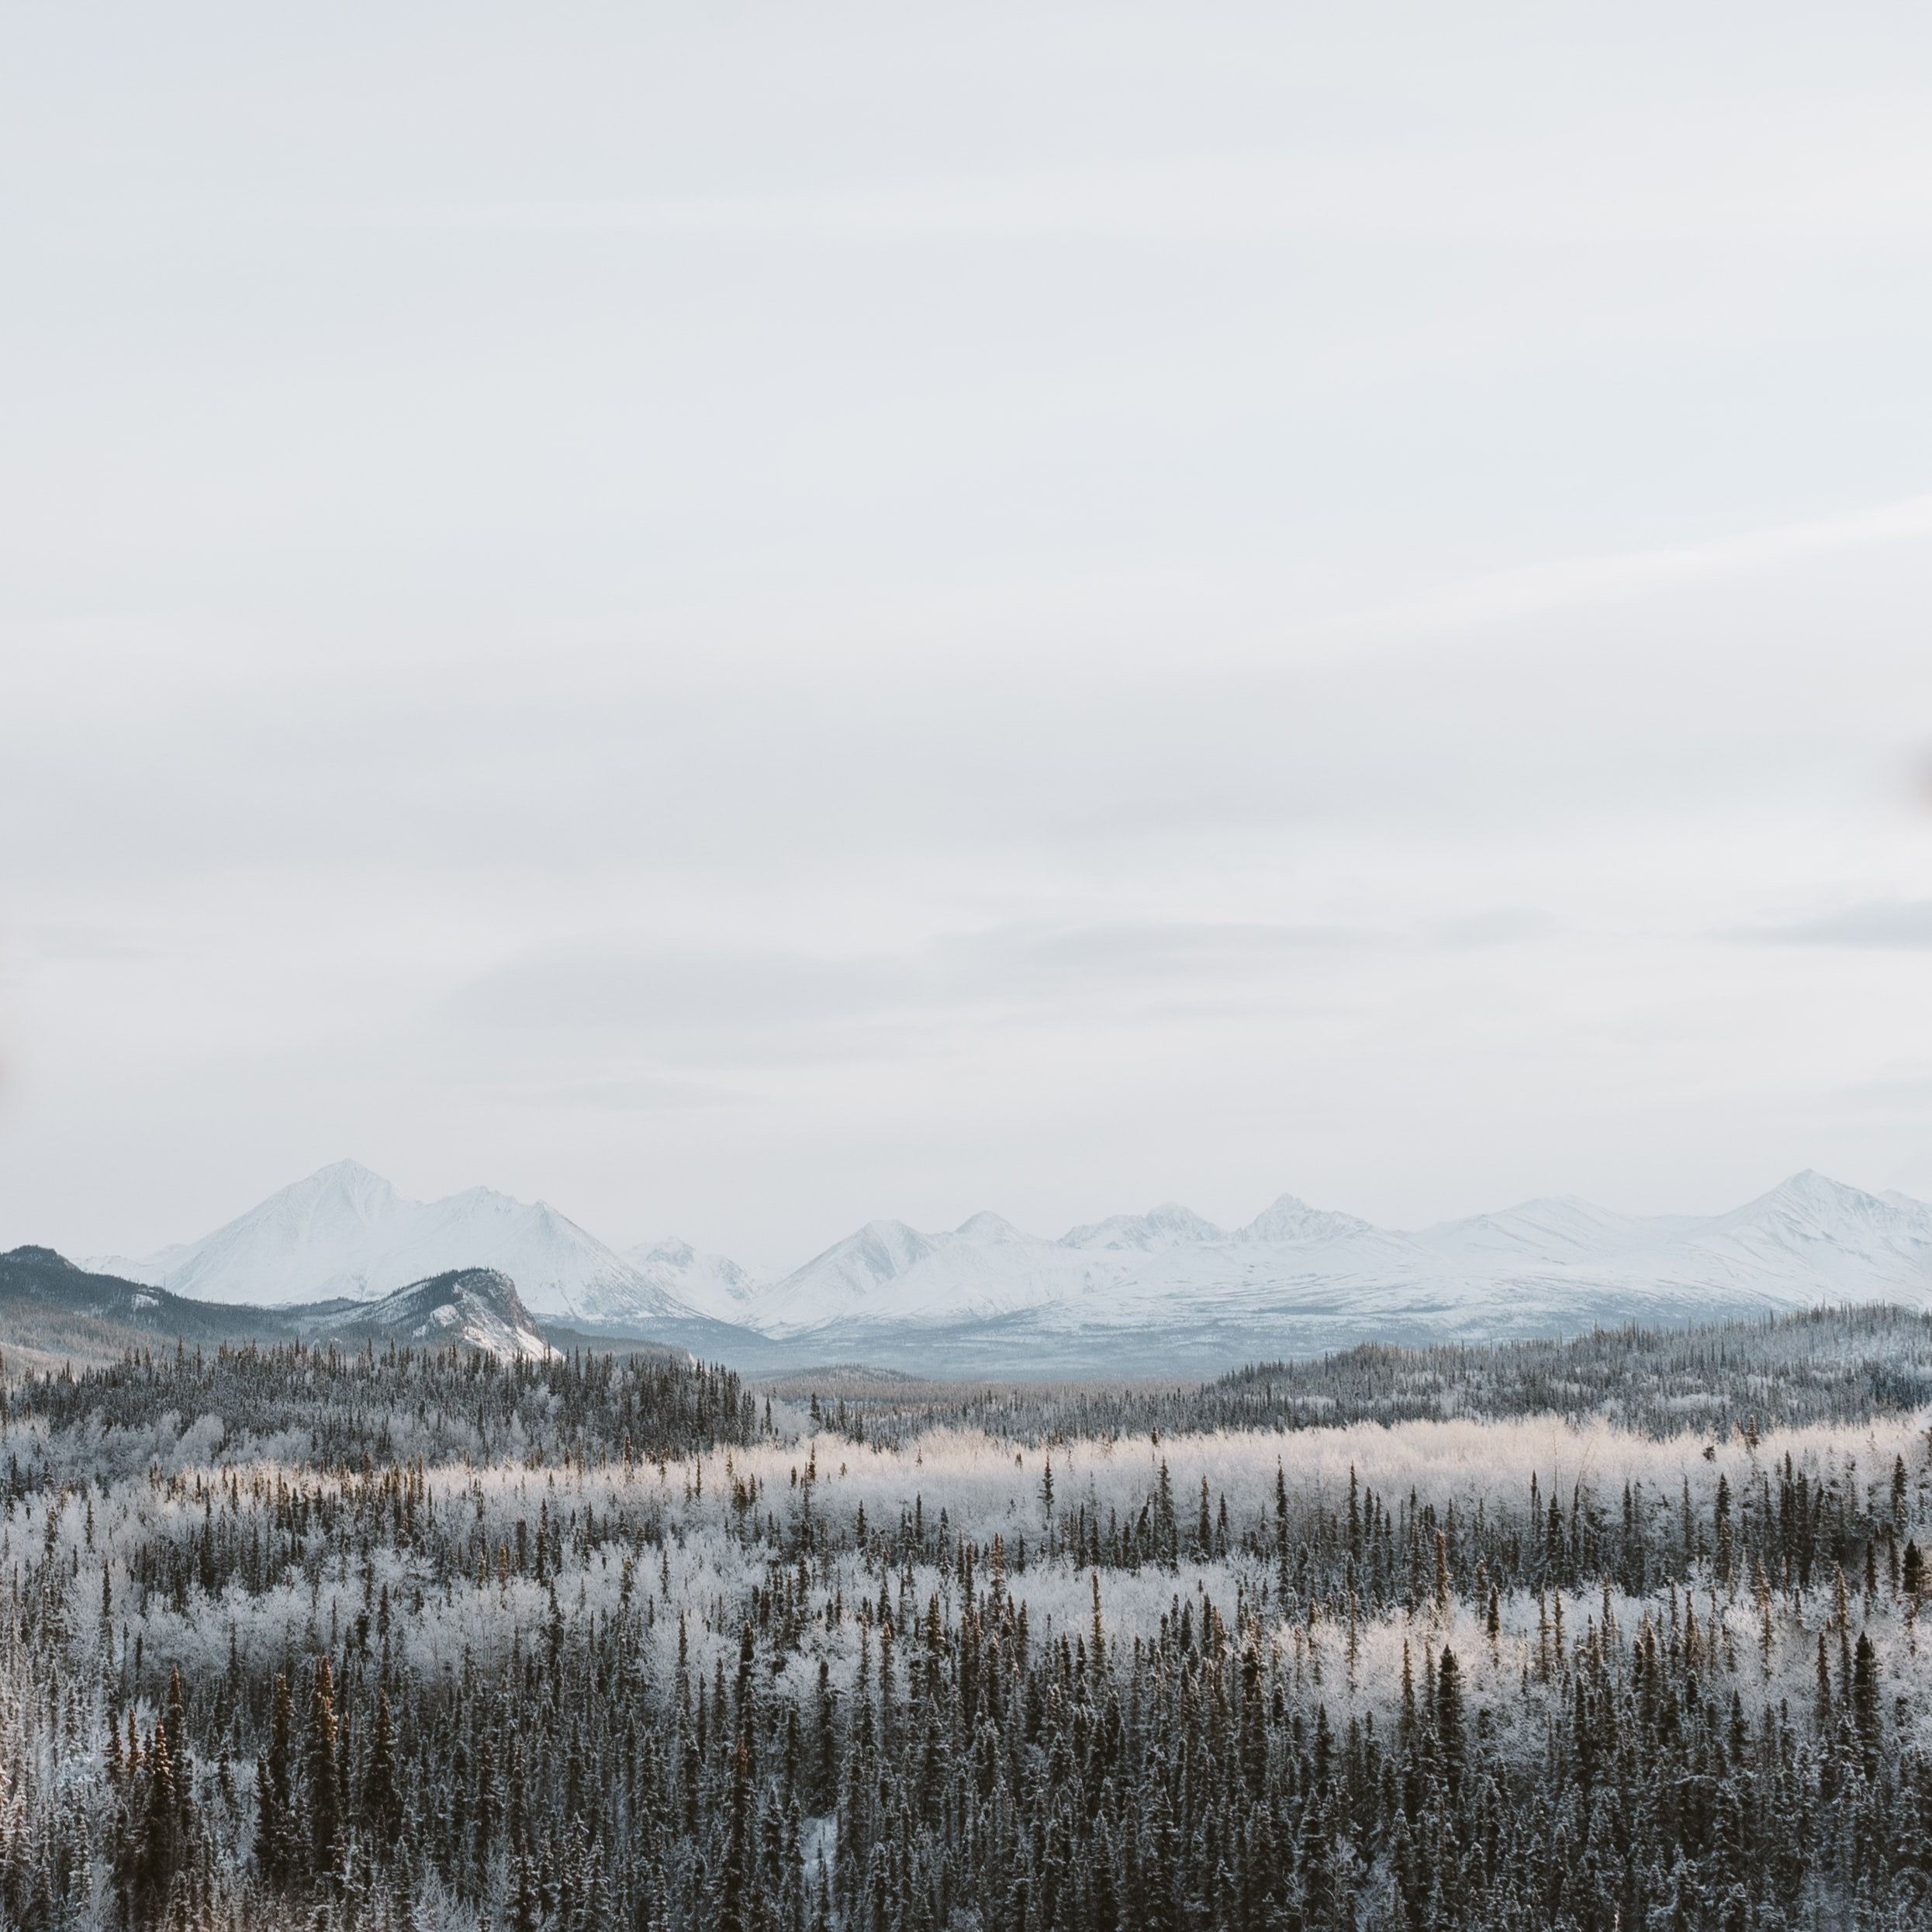 A cloudy sky above a snowy evergreen forest with mountains barely visible at the horizon